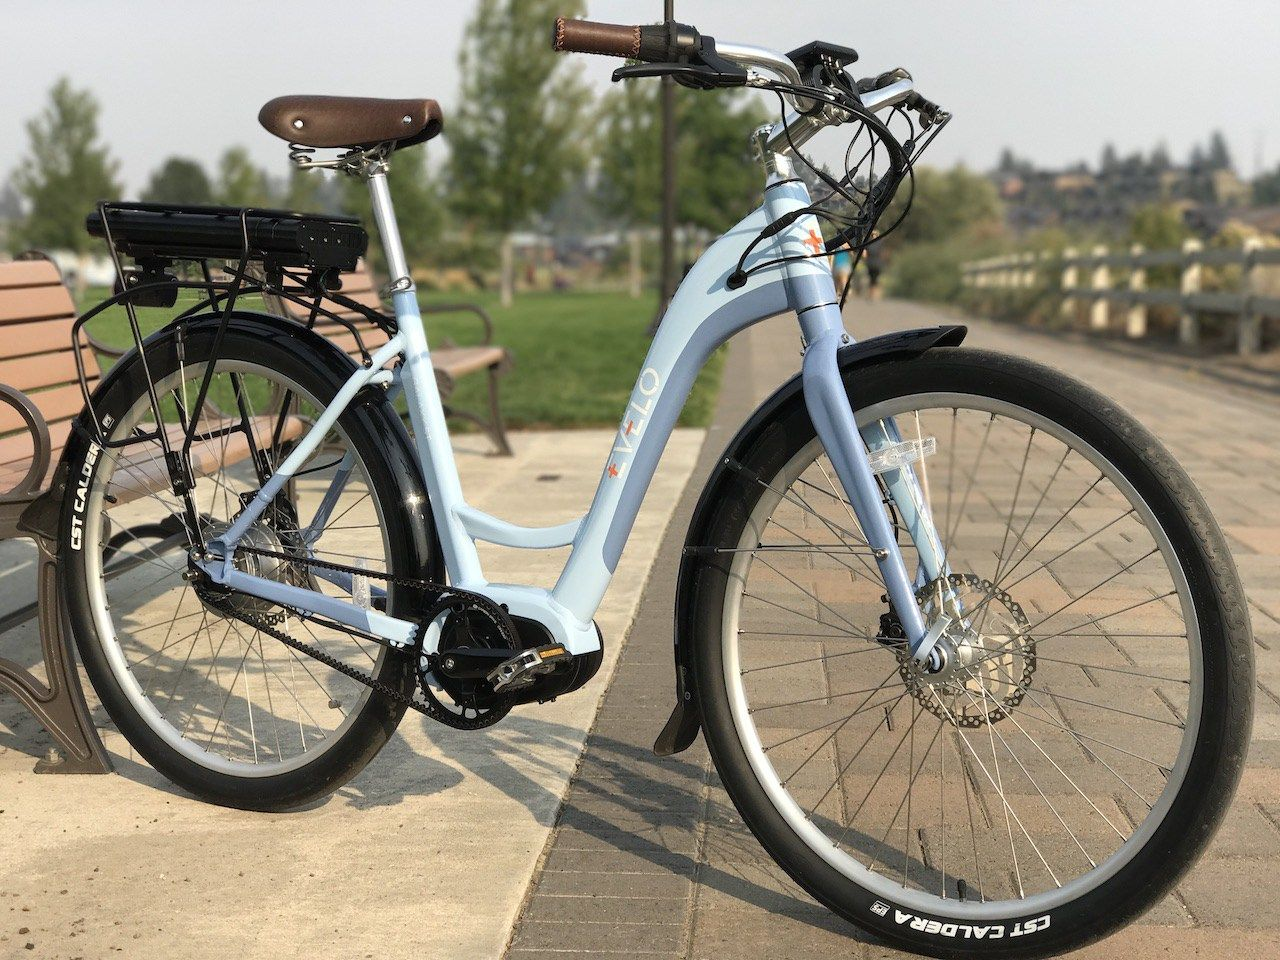 Evelo Galaxy St Electric Bike Review Part 1 Pictures Specs Electric Bike Report Electric Bike Ebikes Electric Bicycles E Bike Reviews Electric Bike Review Electric Bike Ebike